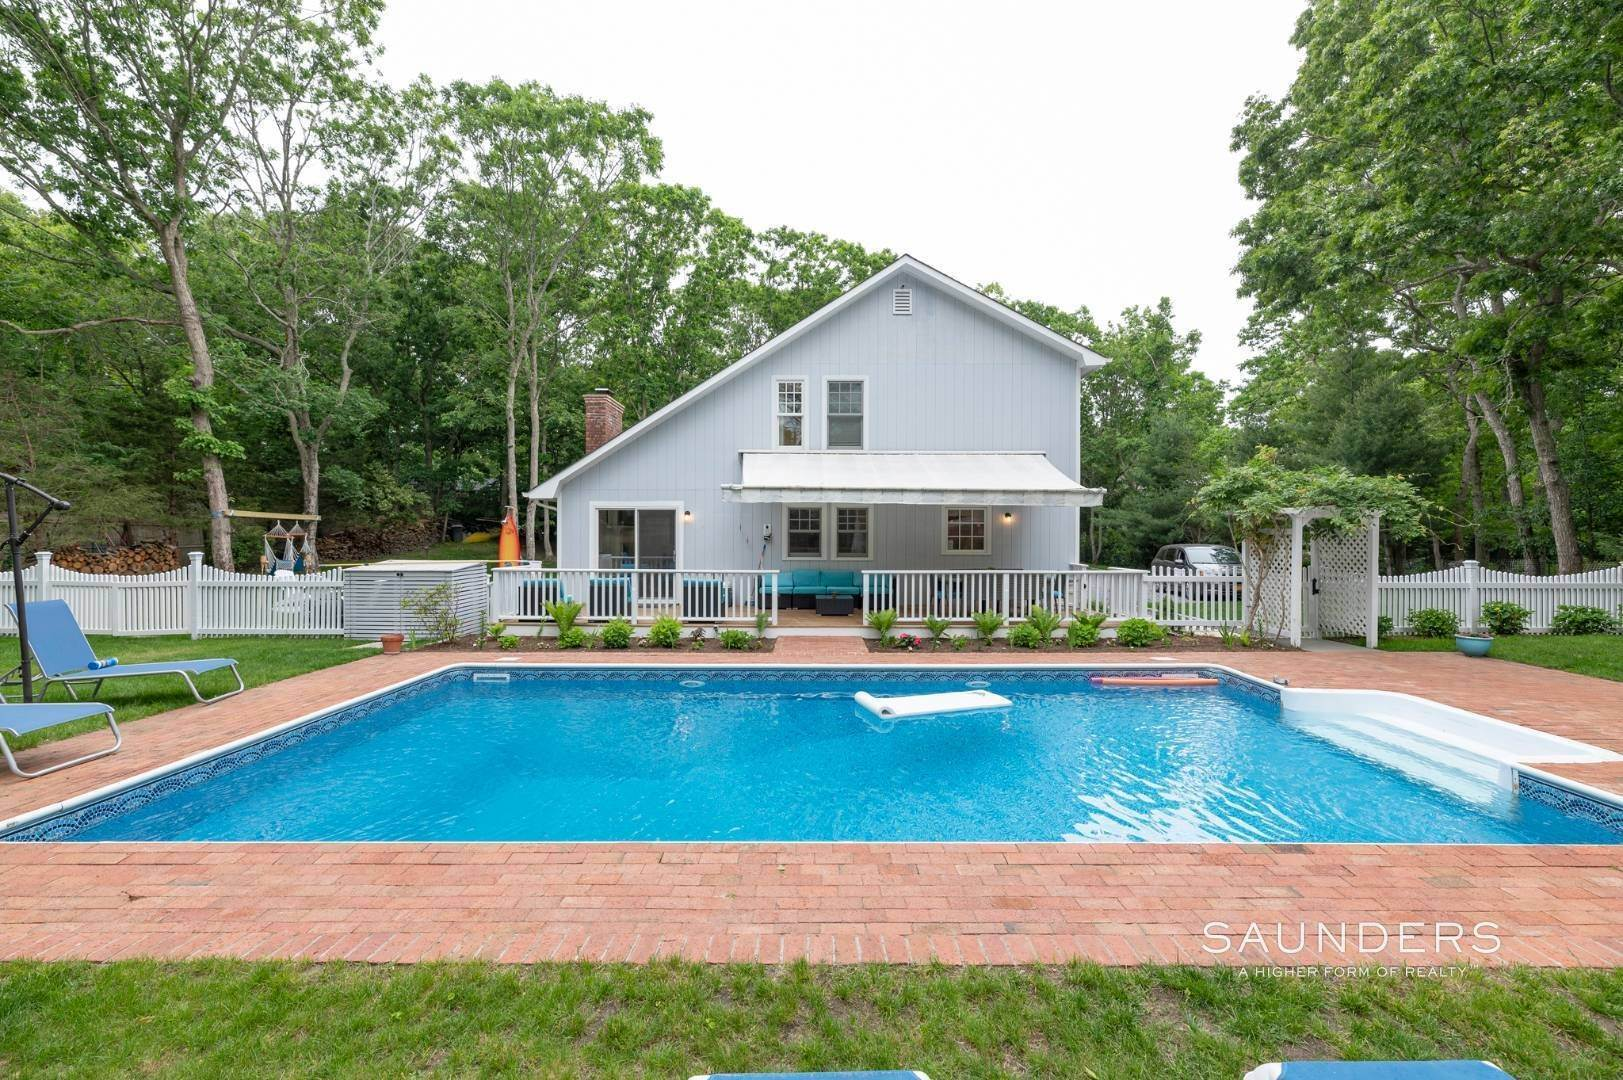 Single Family Homes at Renovated In Springs With Pool And Outdoor Entertaining 28 Ocean View Avenue, East Hampton, East Hampton Town, NY 11937